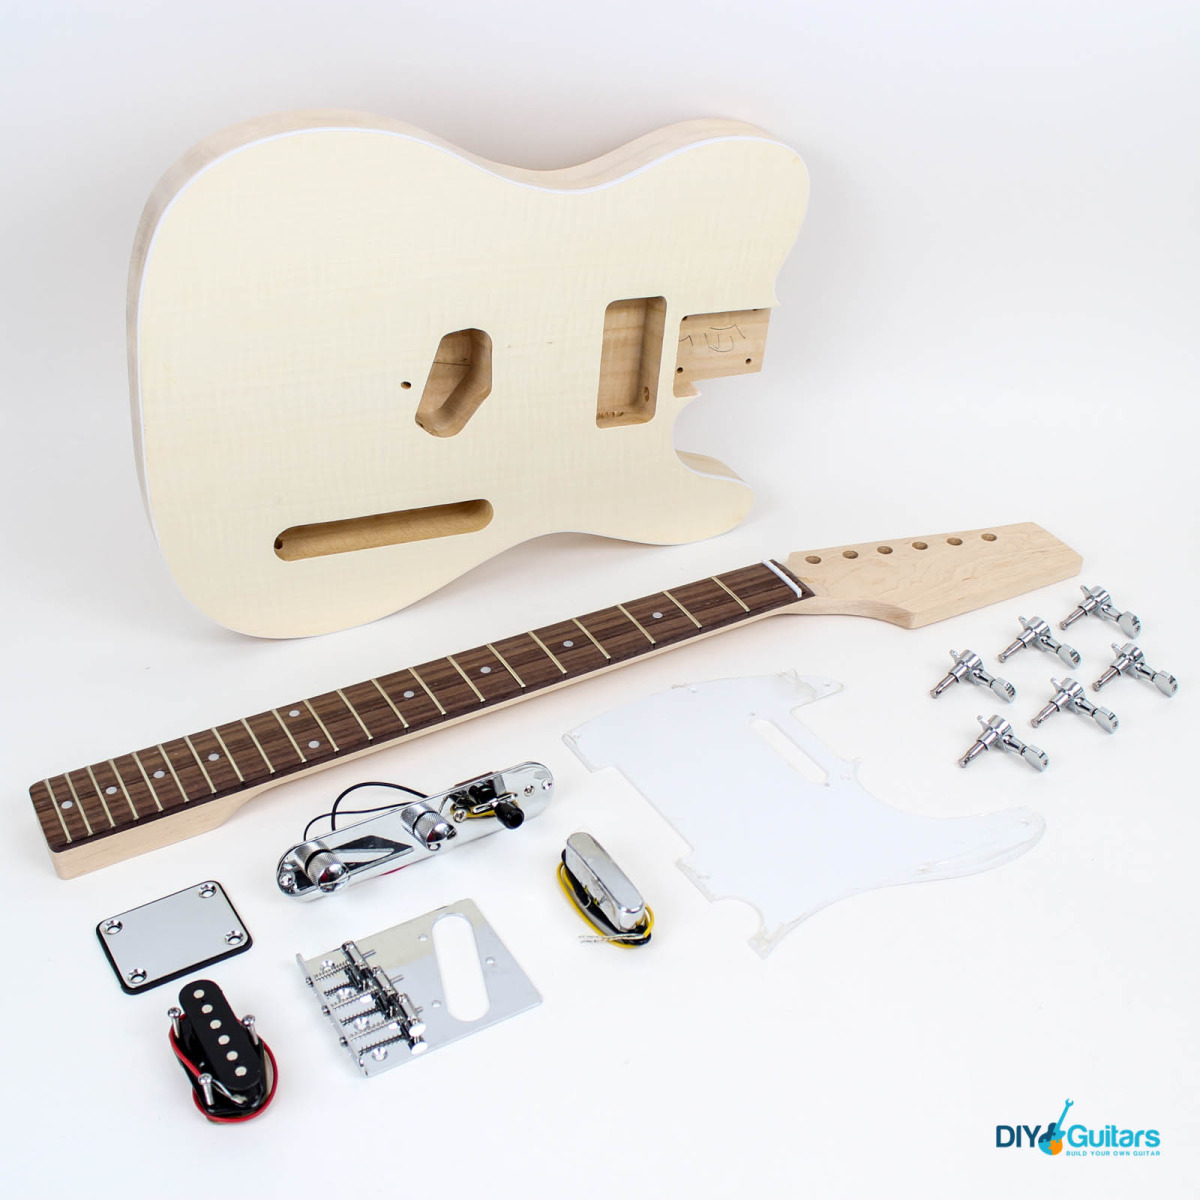 TLCT Guitar Kit Flame Maple Top - DIY Guitars